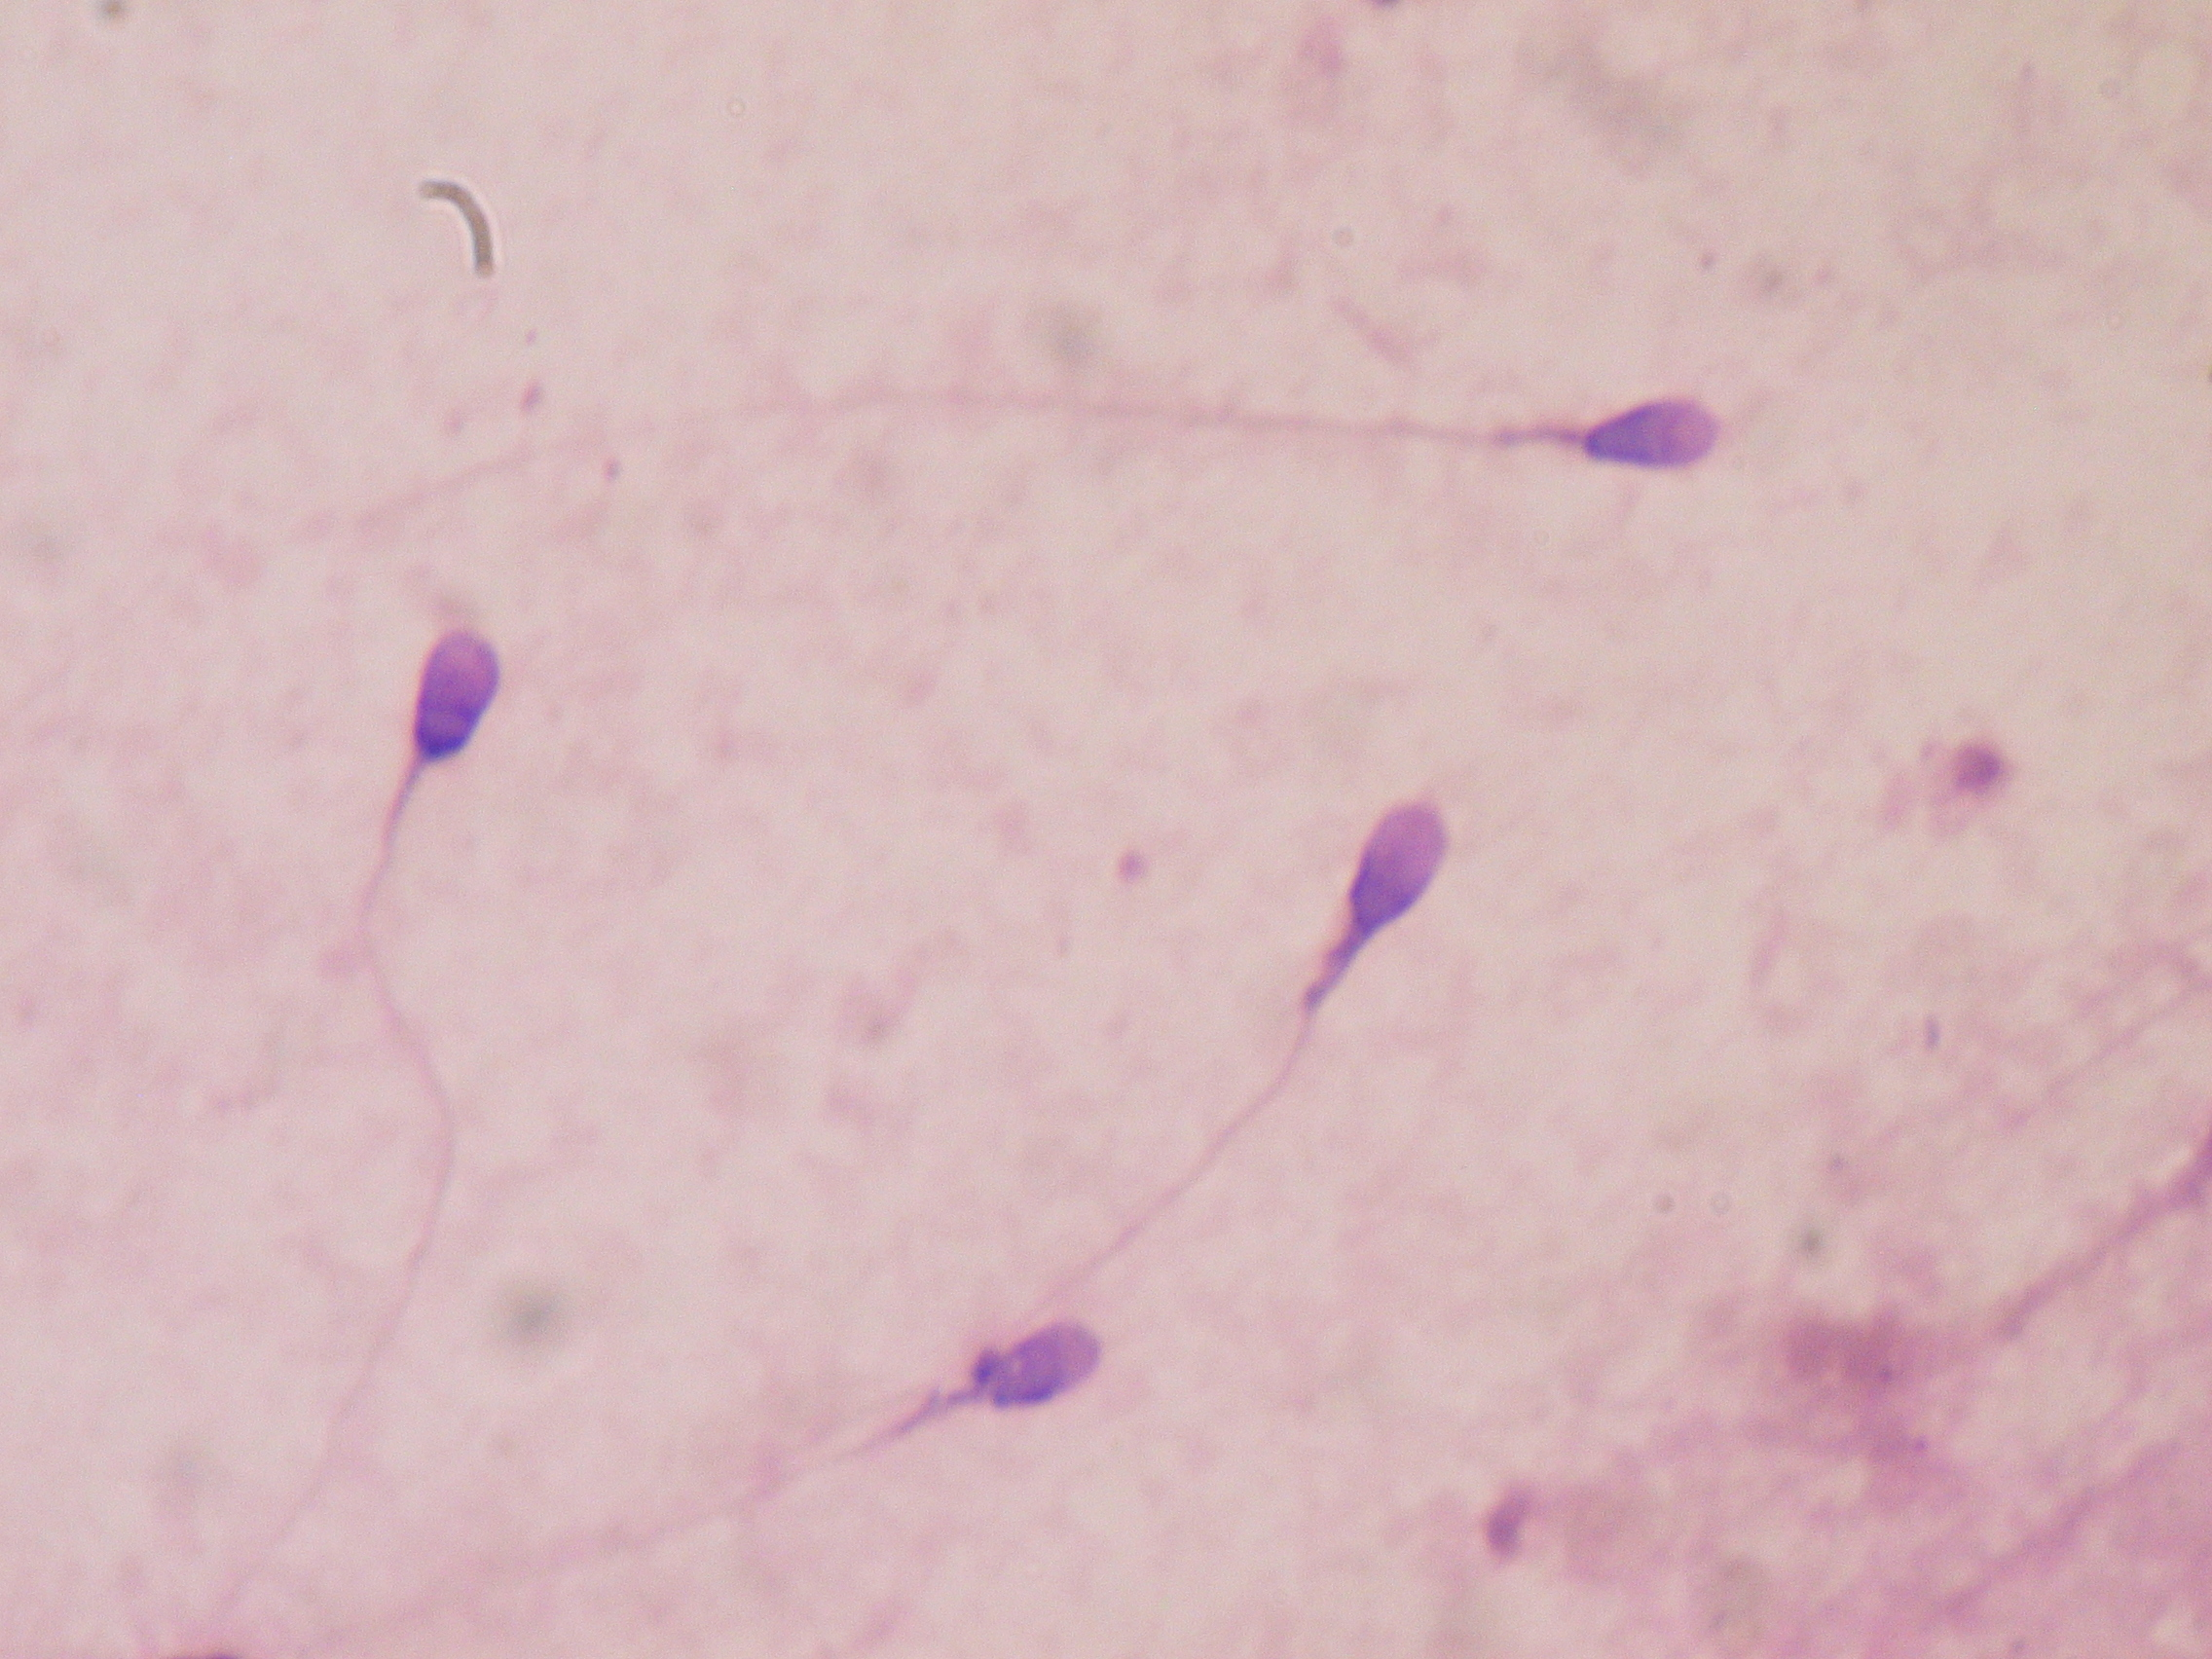 Stained human sperm in a laboratory. Image obtained from Wikimedia.org